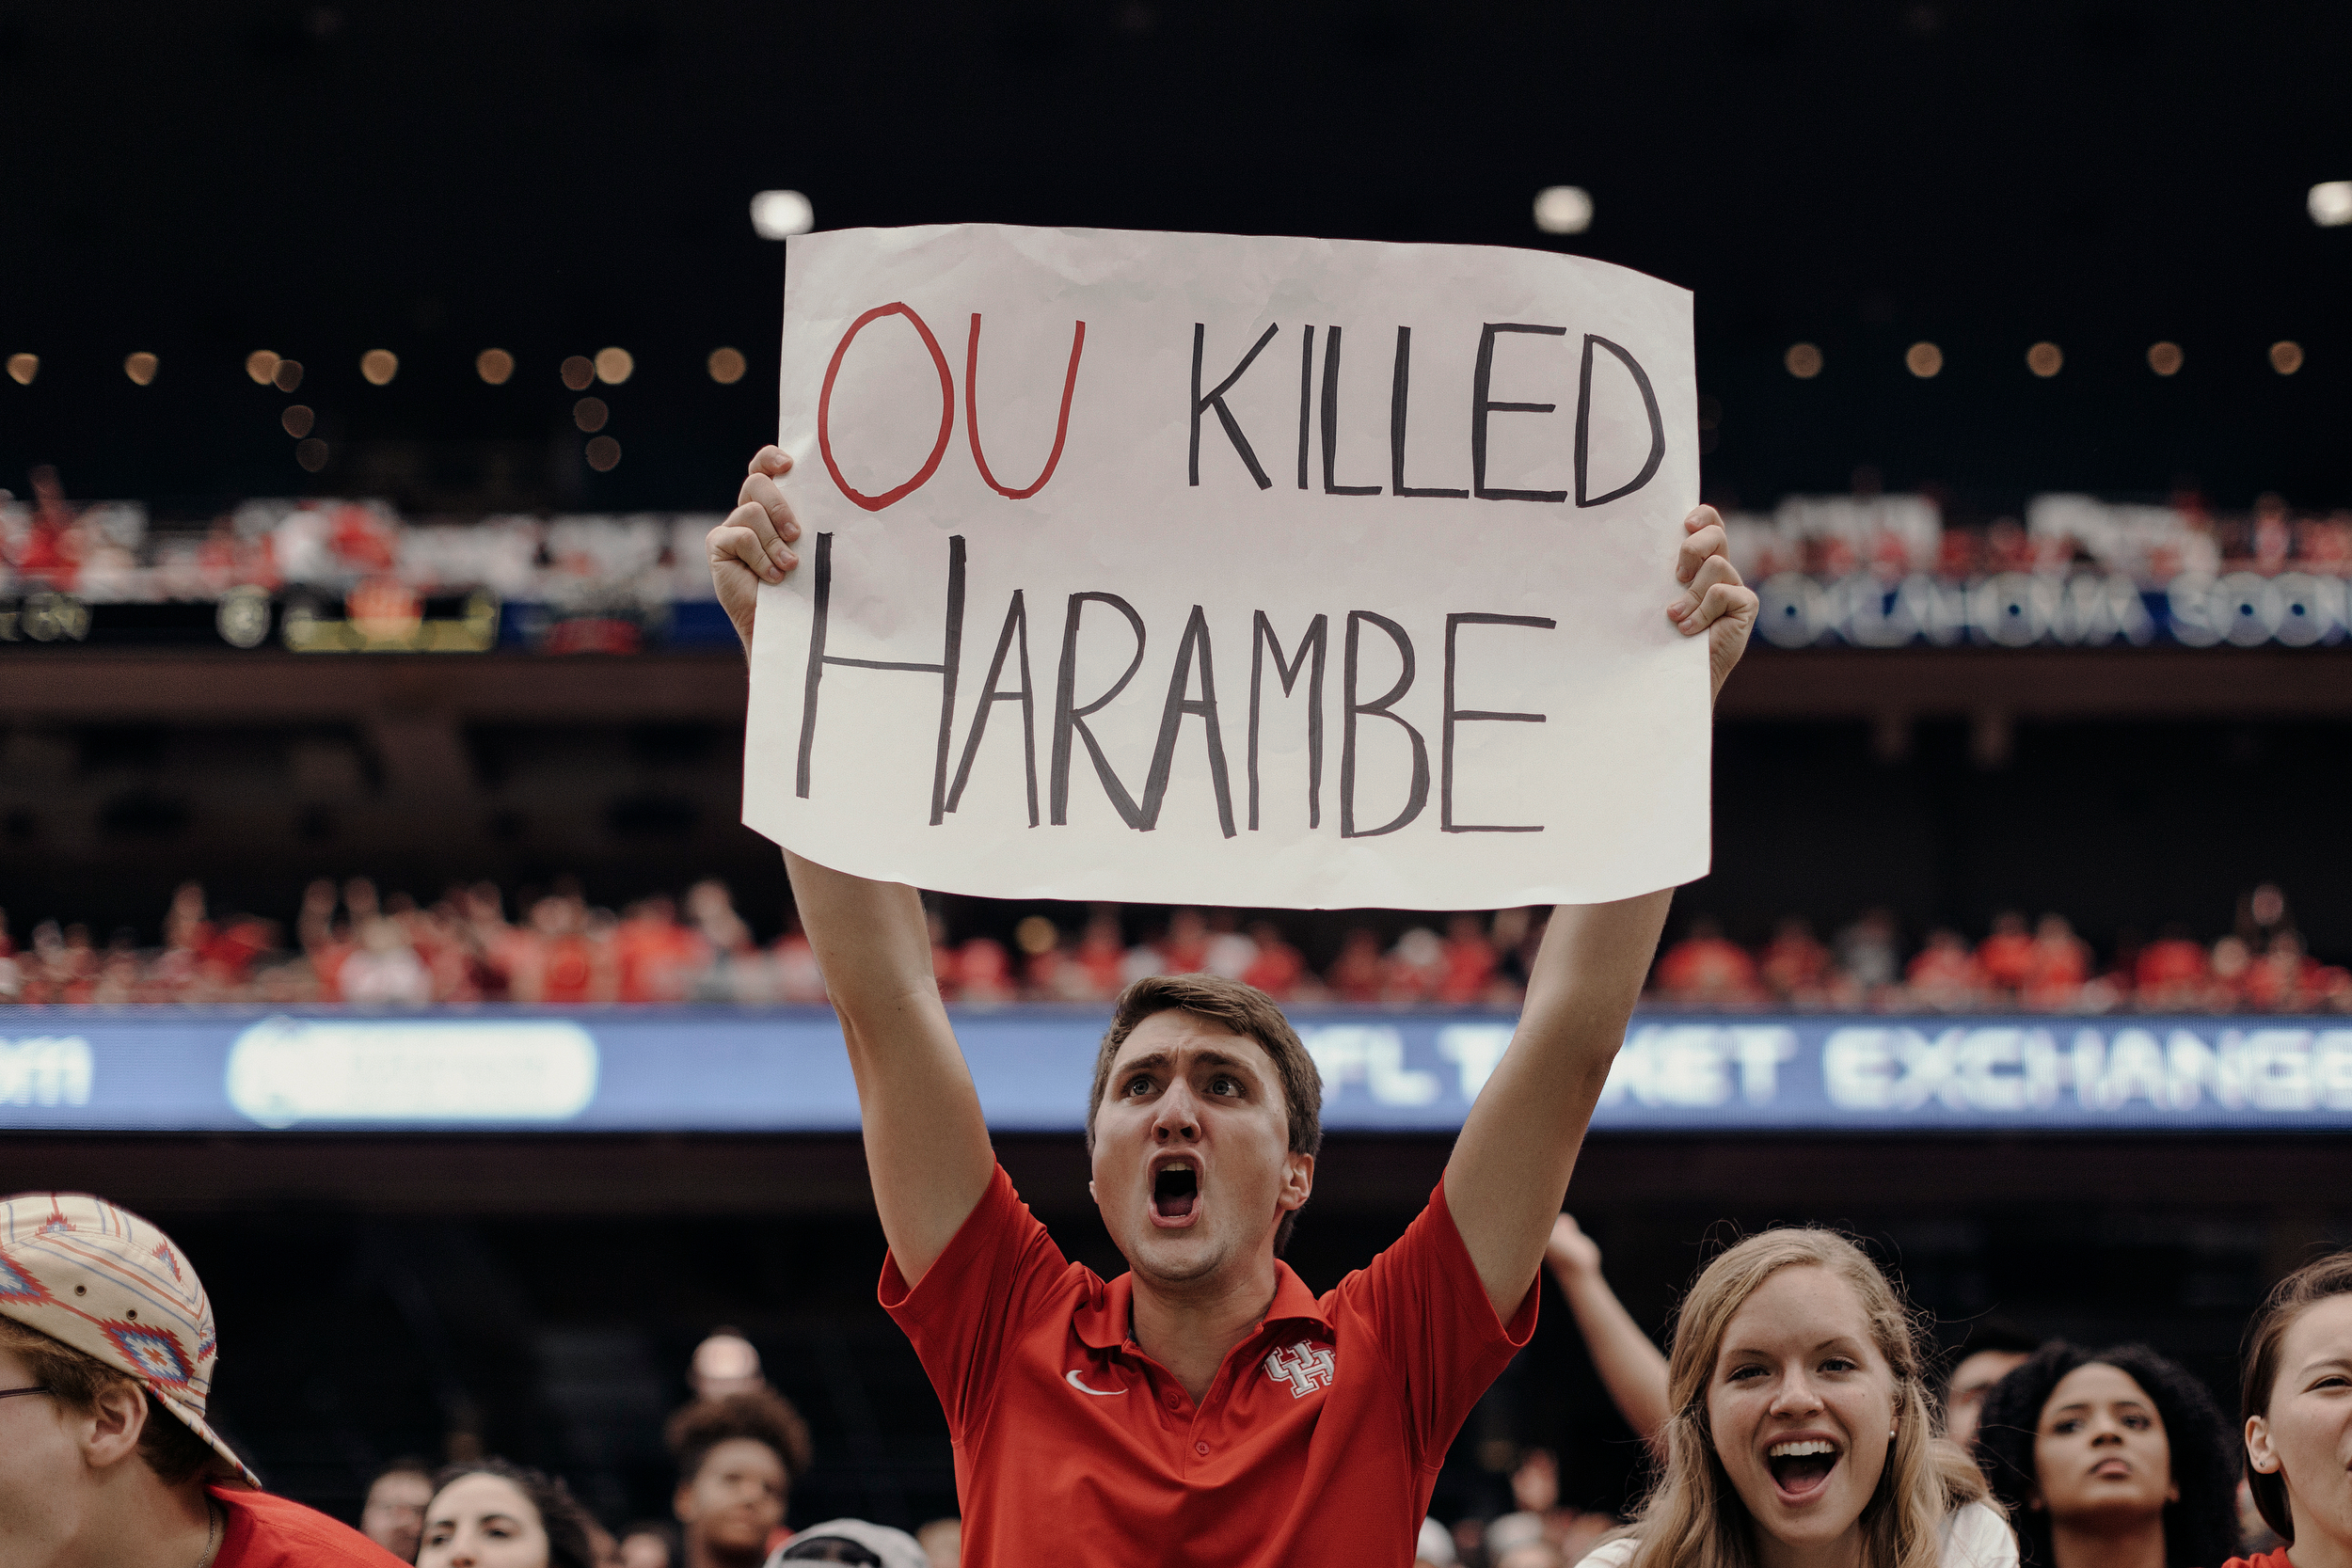 A University of Houston fan holds up a hand-made sign during the game. Todd Spoth for The New York Times.